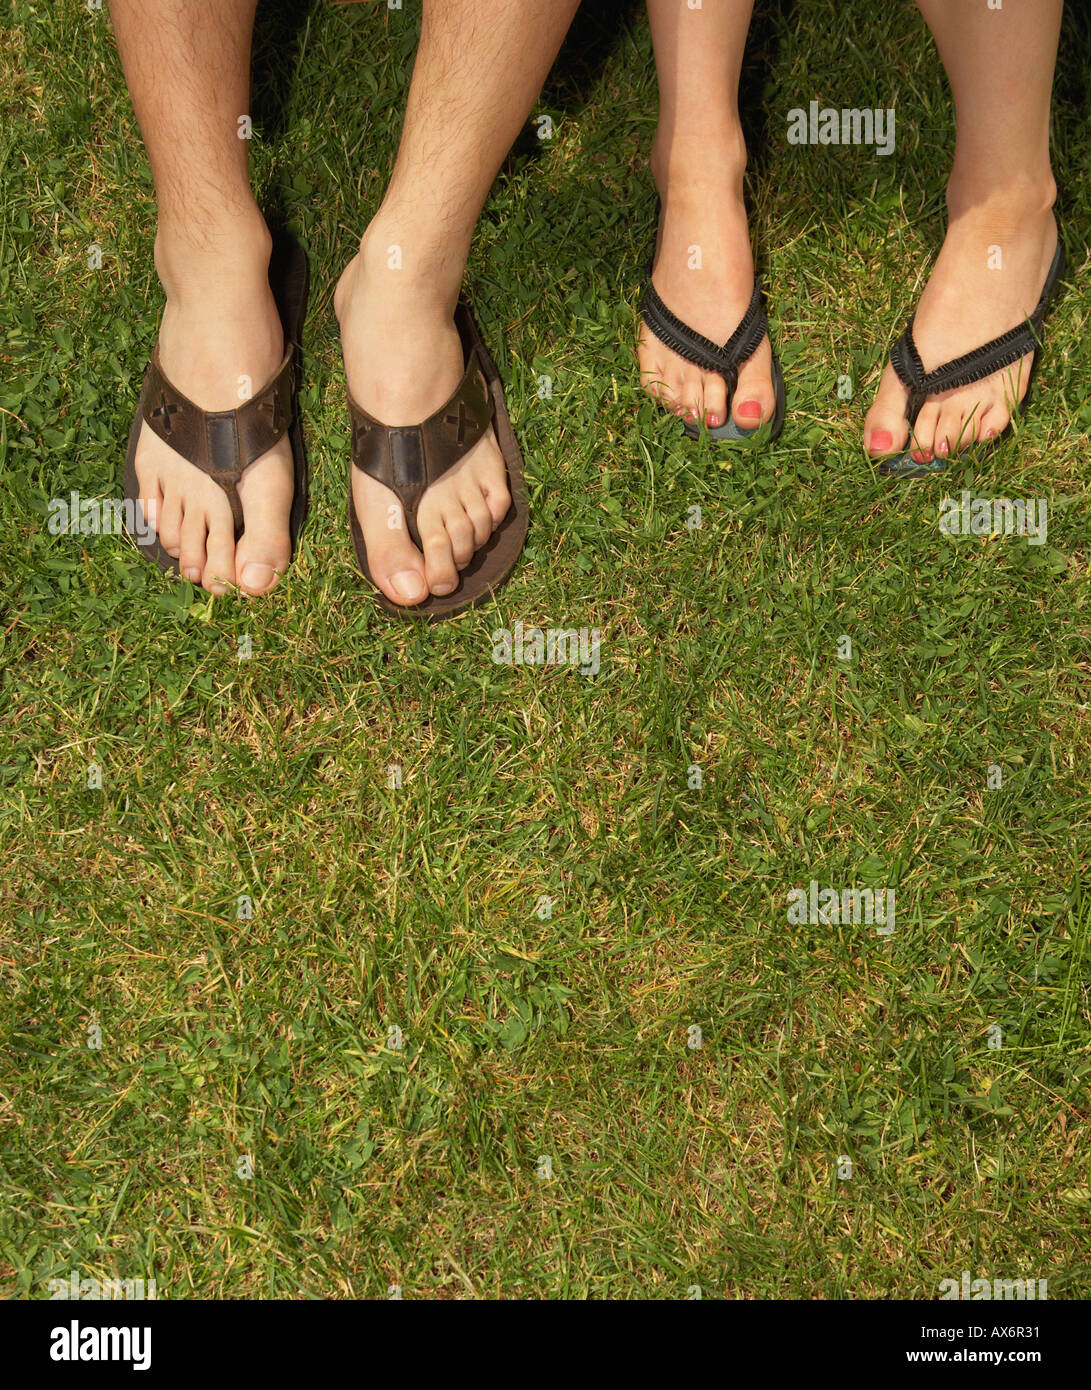 Male and female feet in sandals - Stock Image